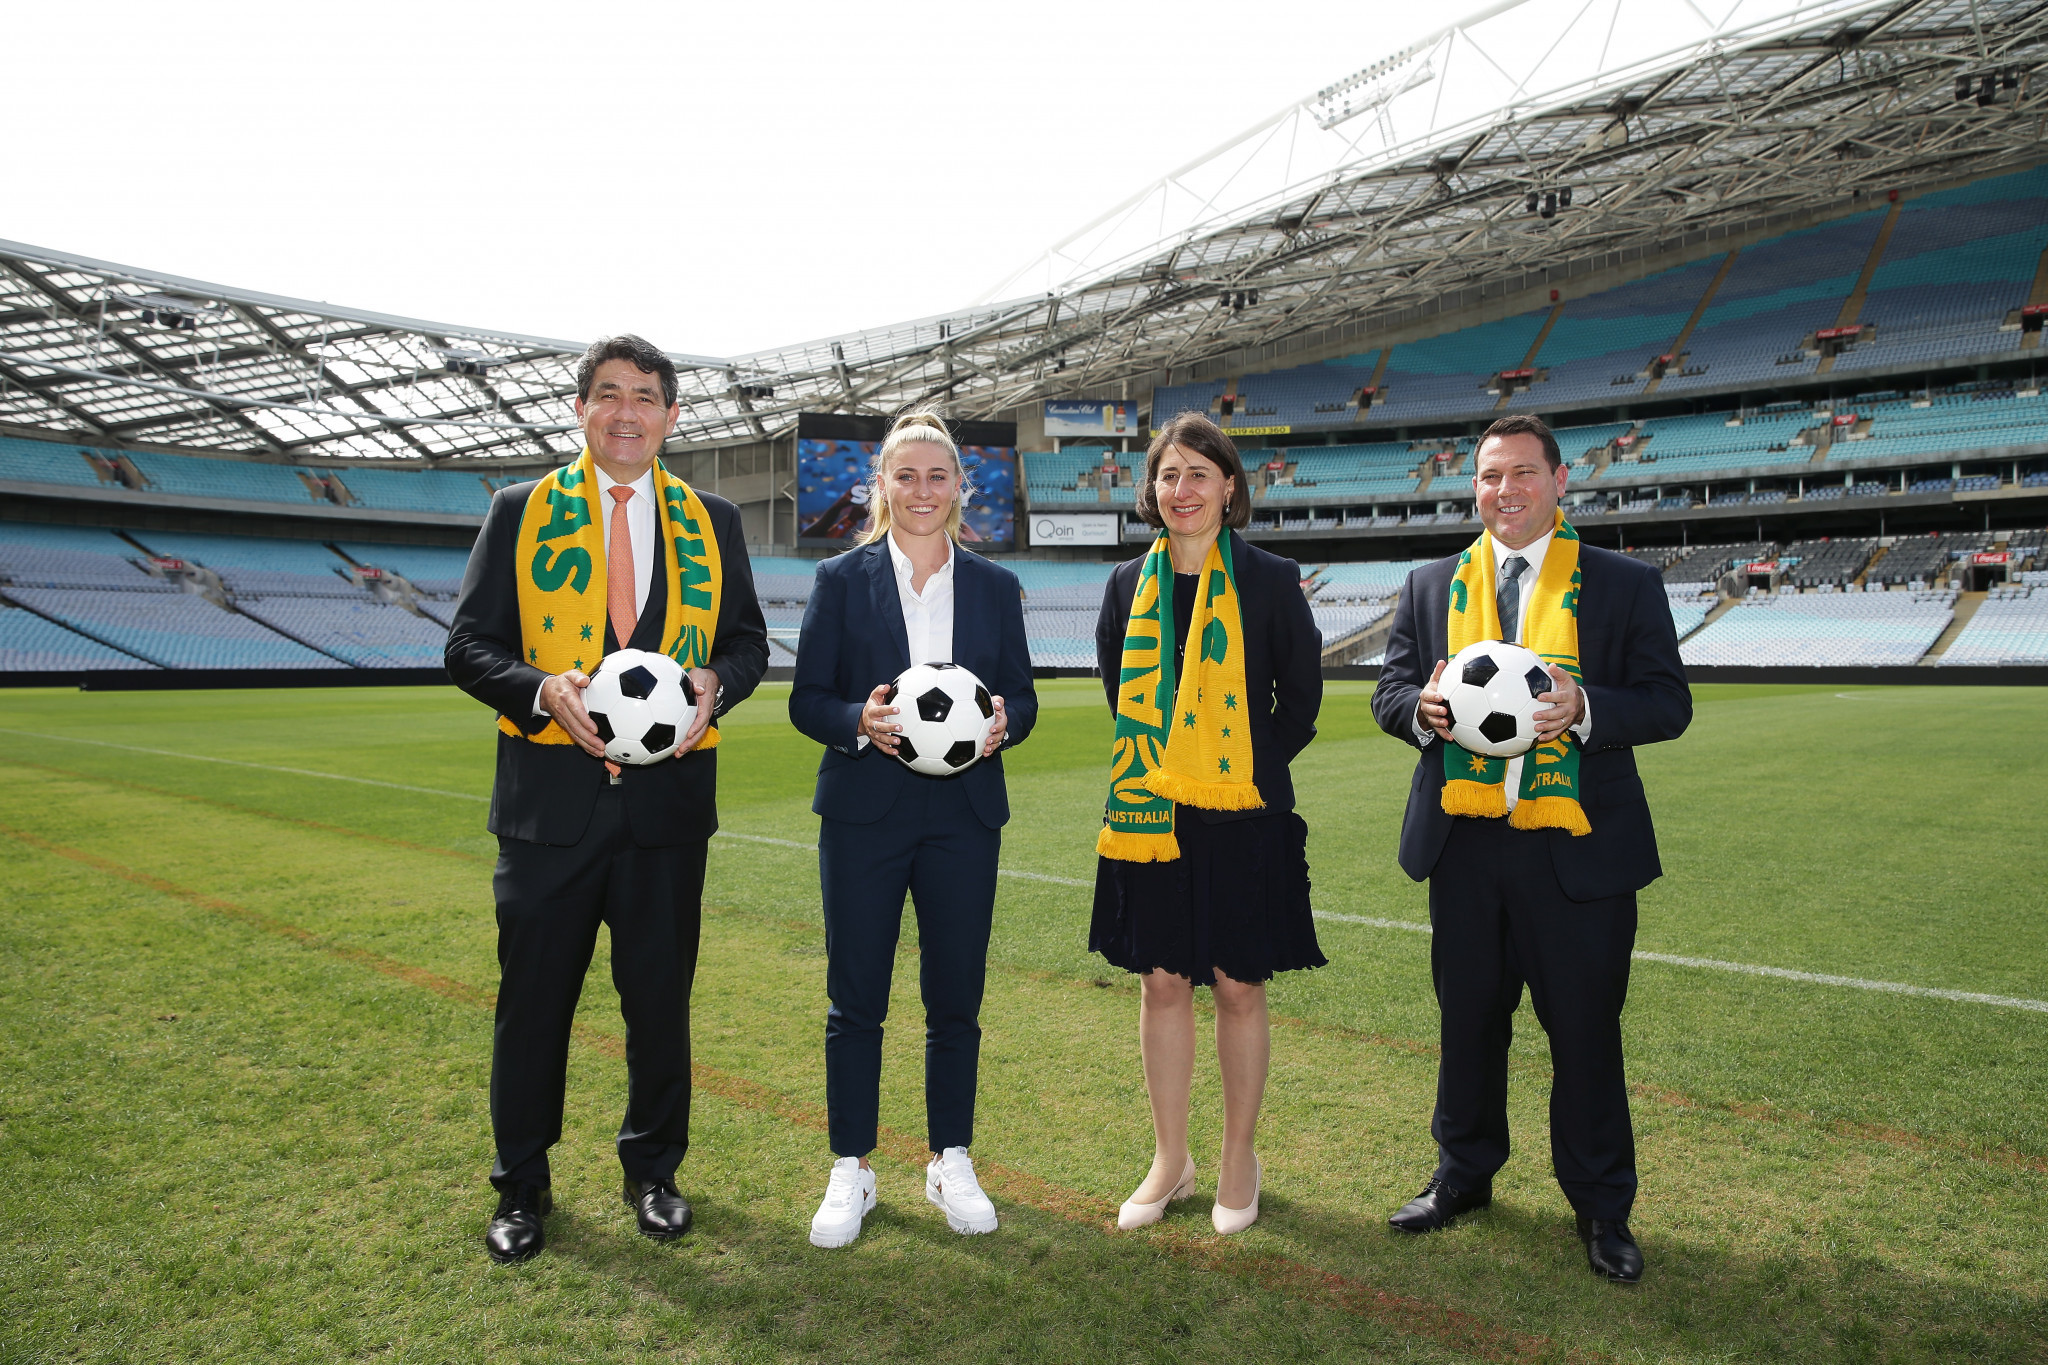 Host cities and stadiums named for 2023 FIFA Women's World Cup in Australia and New Zealand